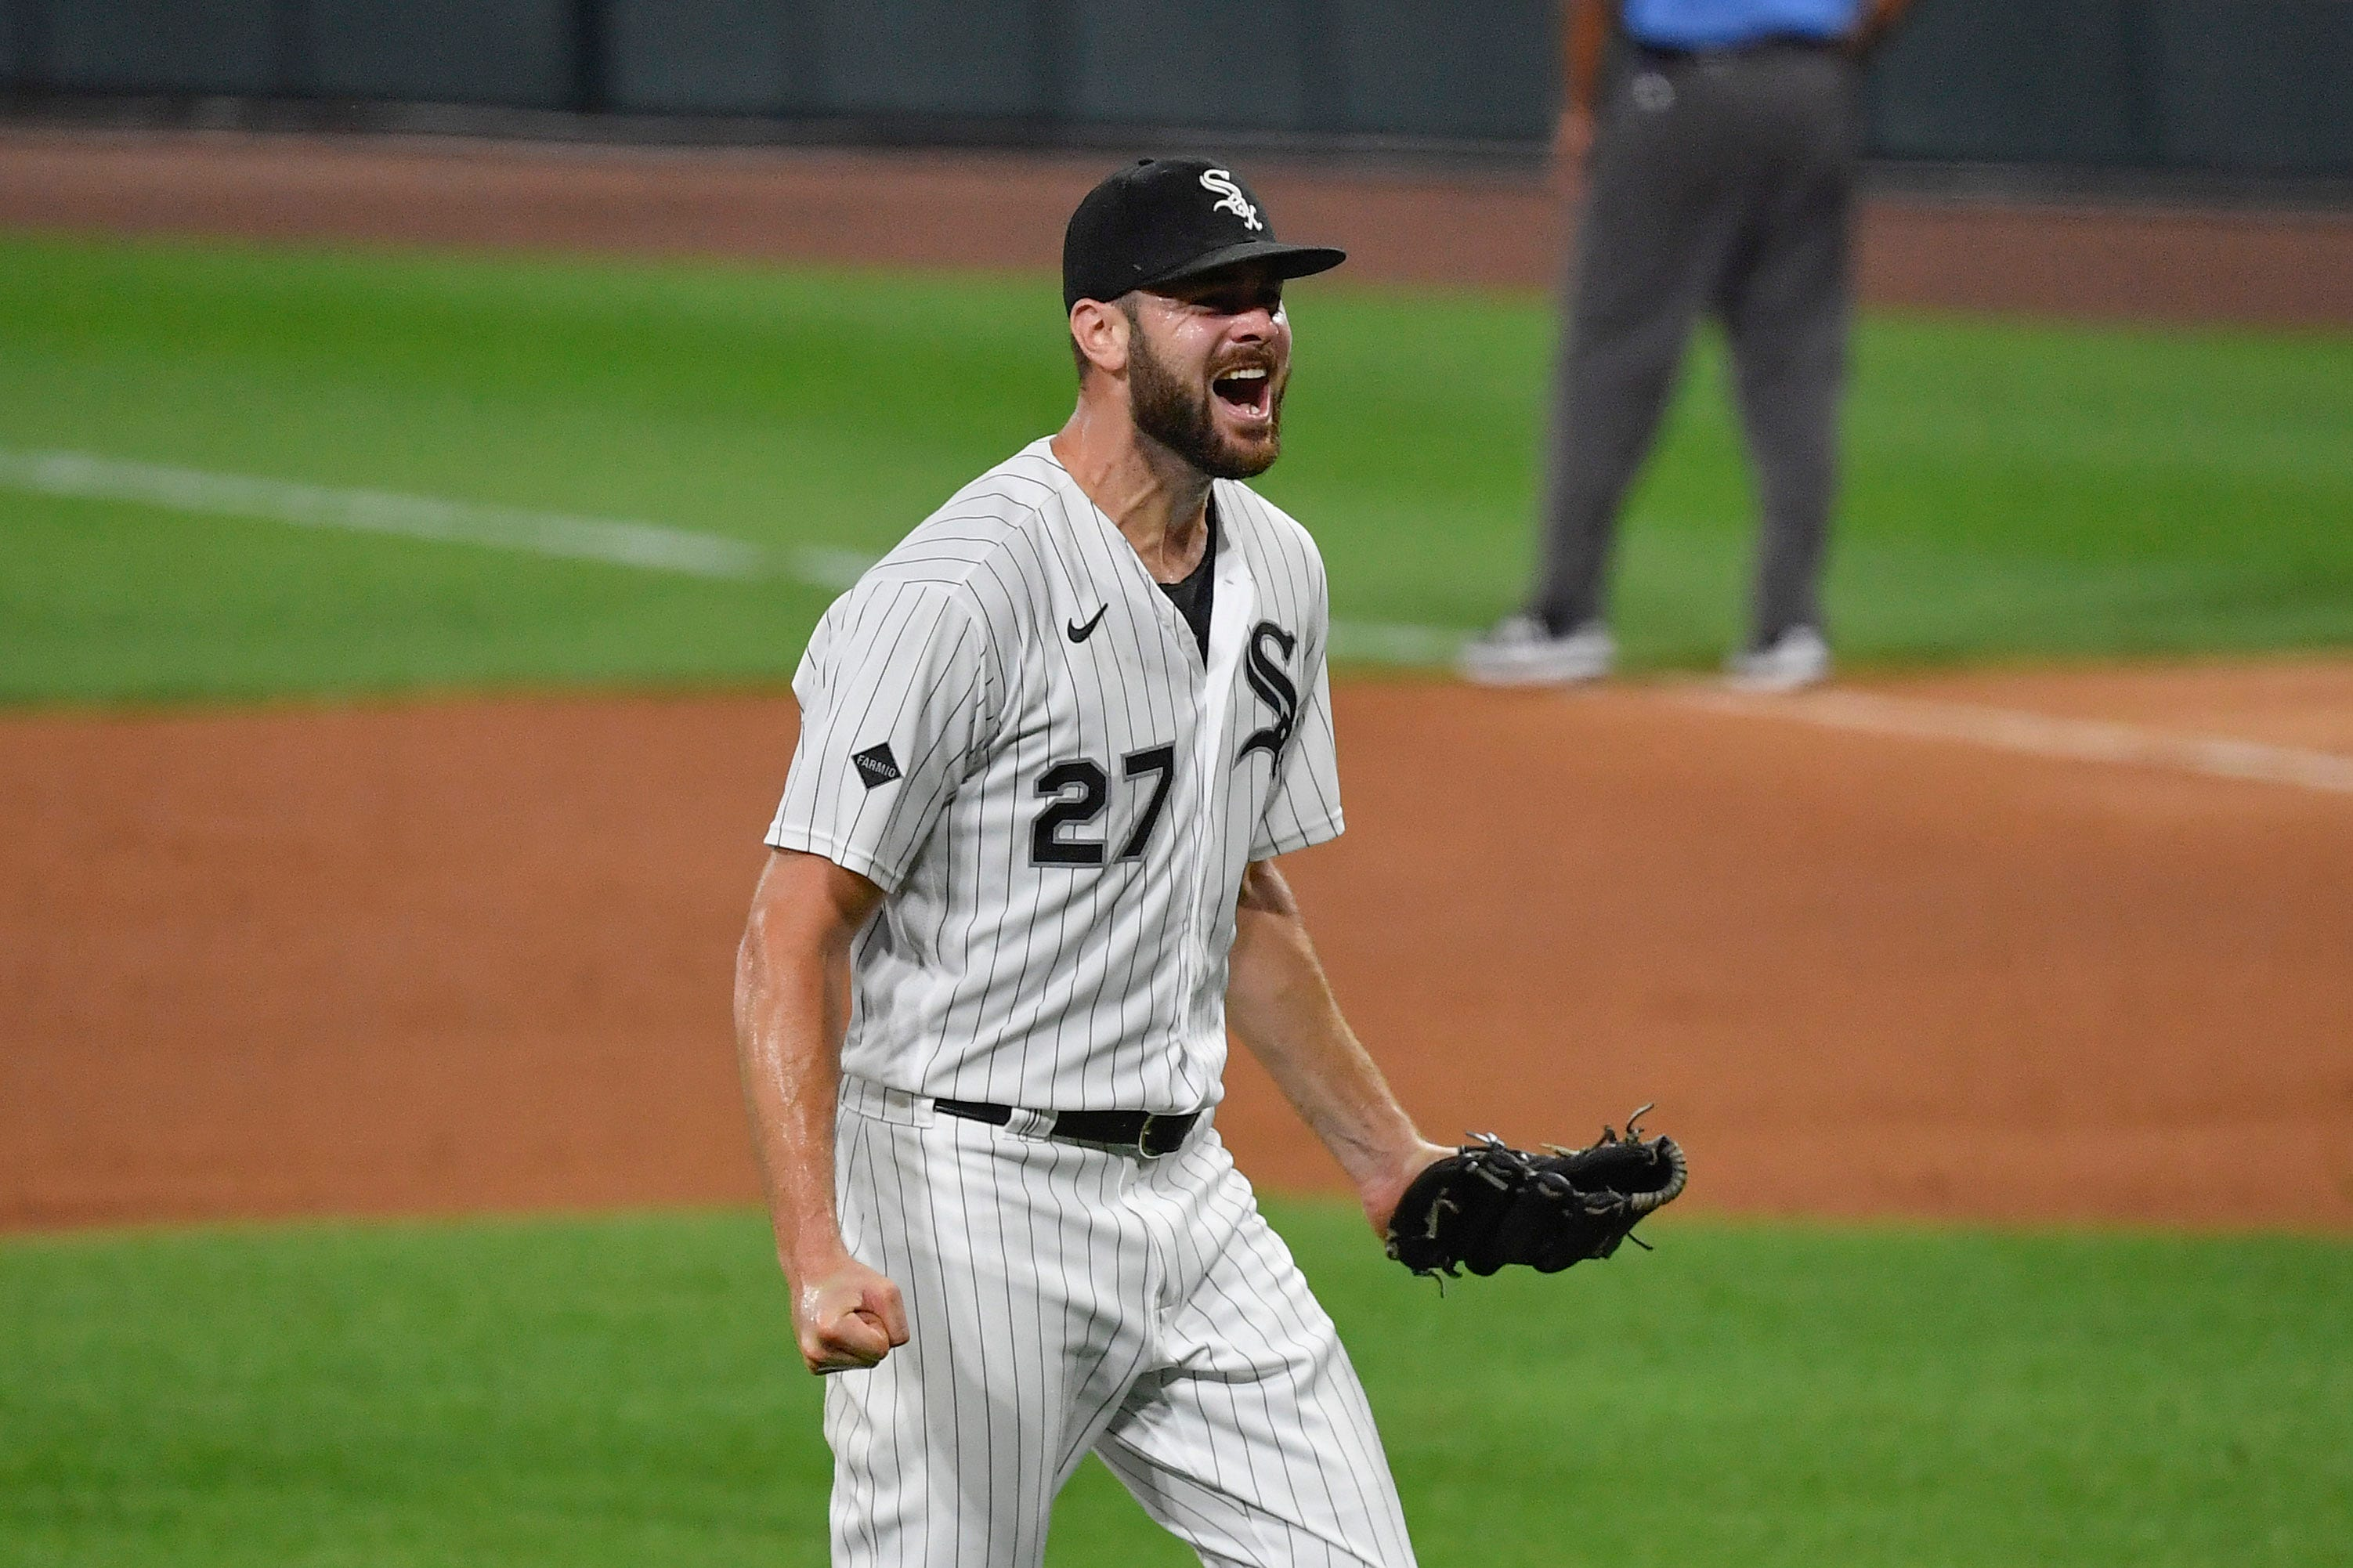 Chicago White Sox pitcher Lucas Giolito throws MLB s first no-hitter of 2020 season